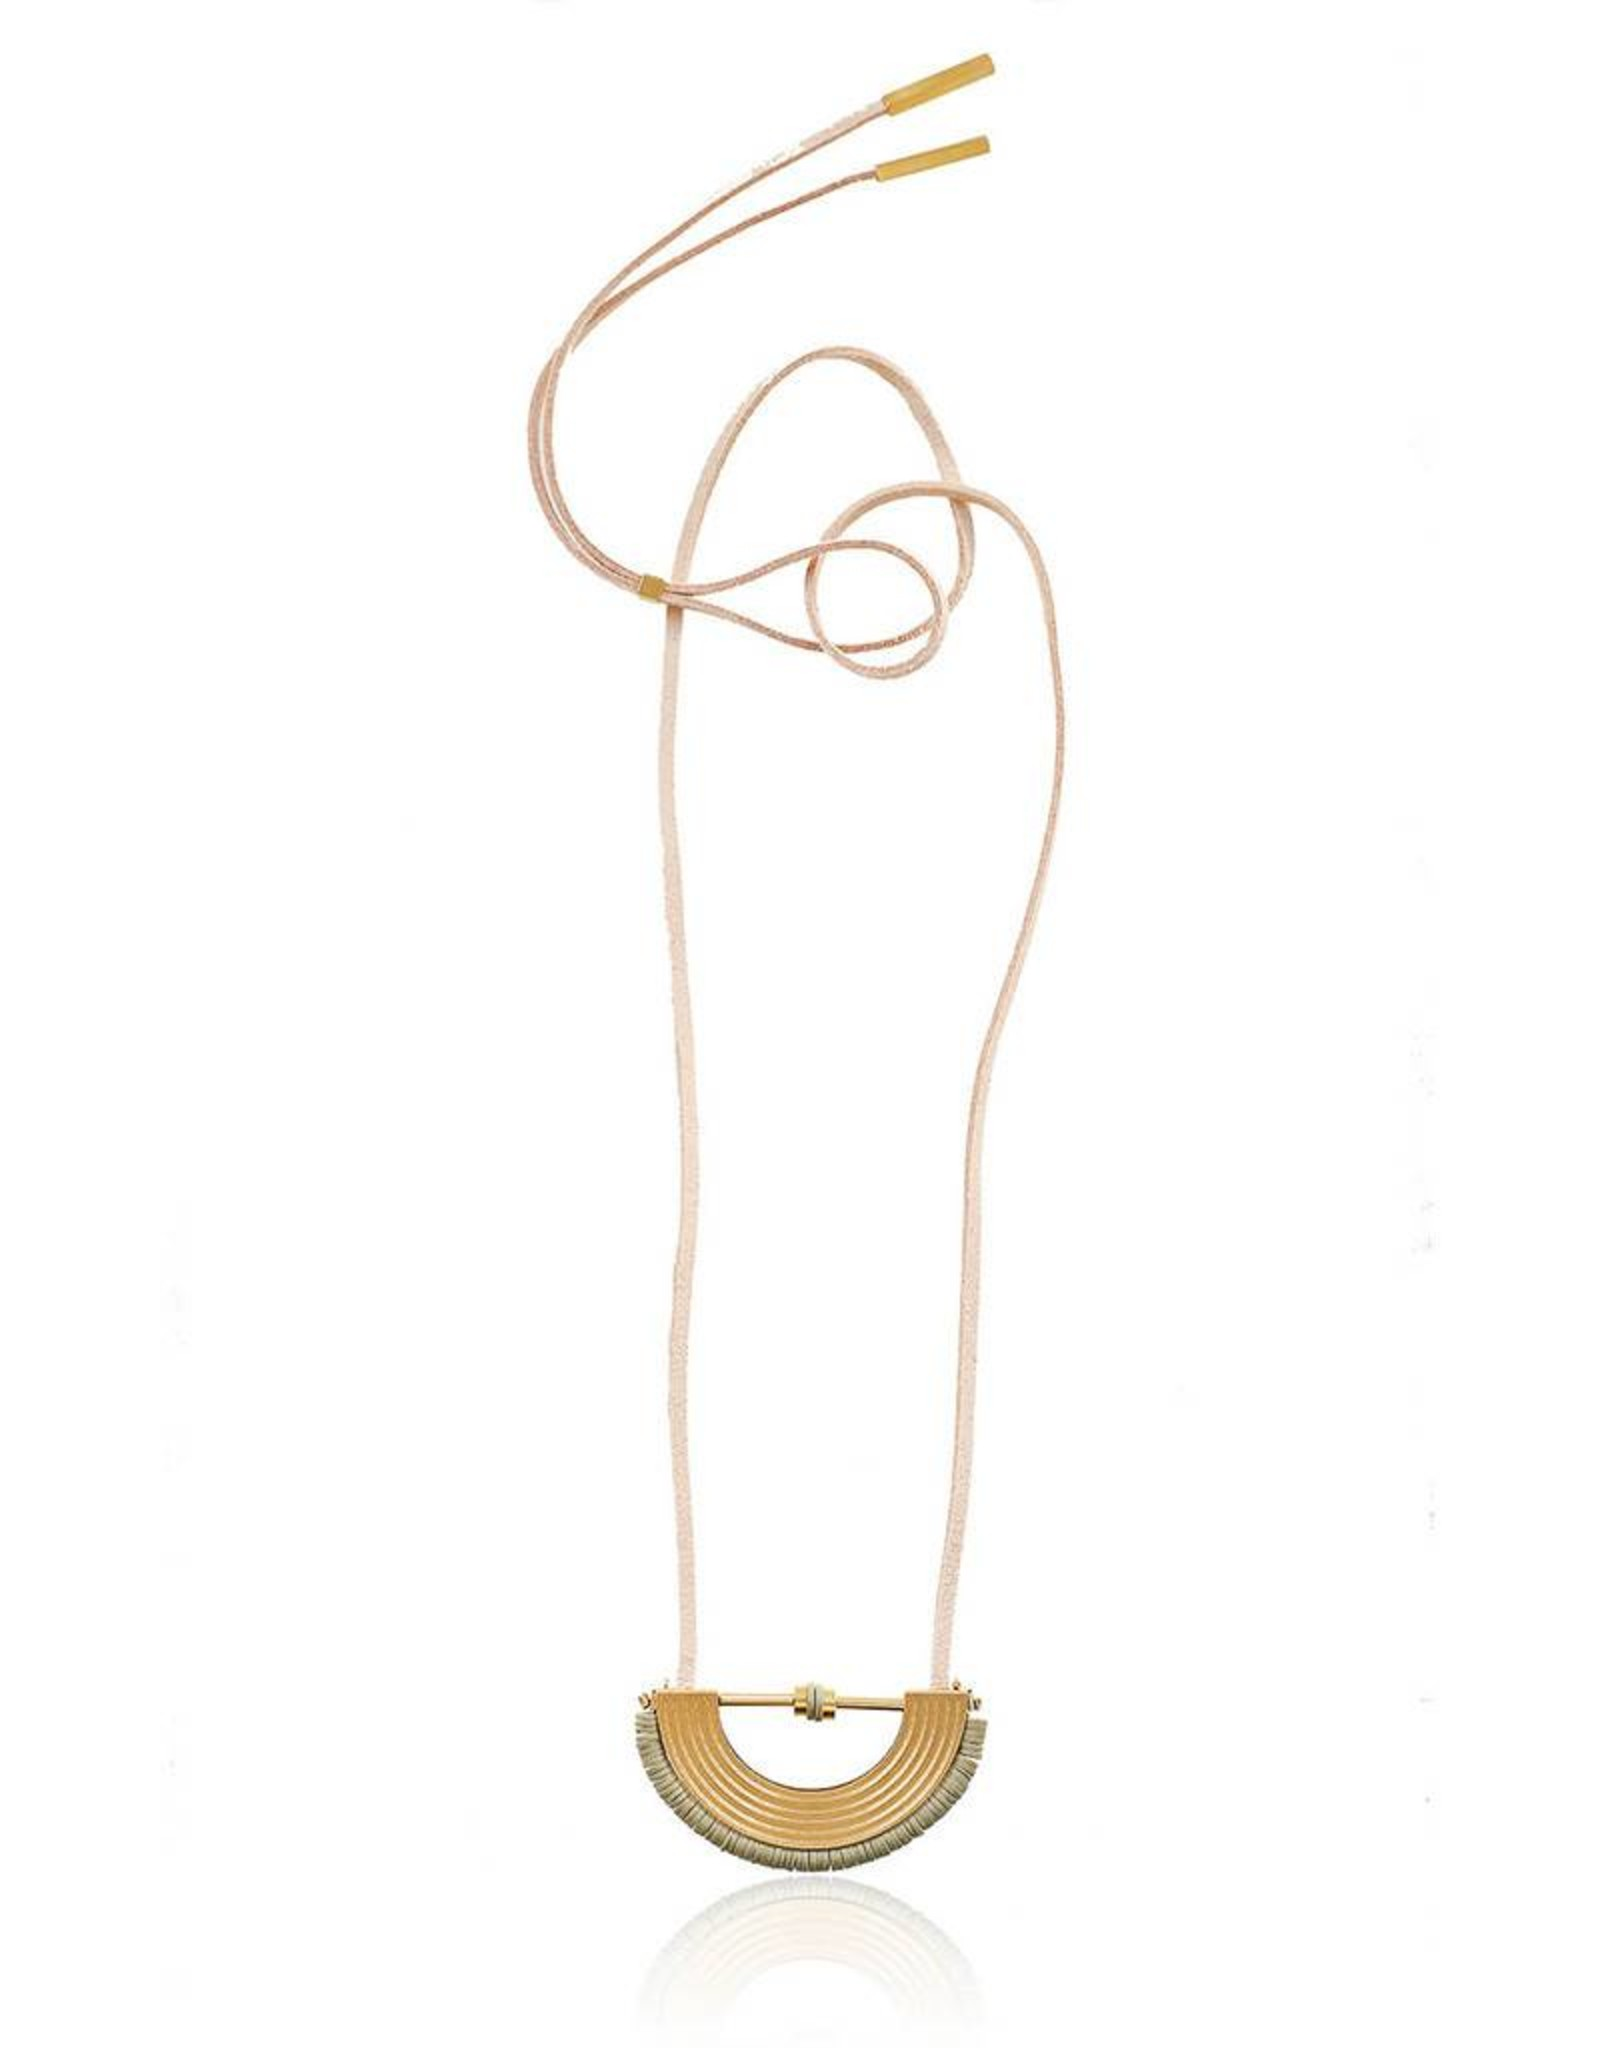 Shlomit Ofir Colorado necklace